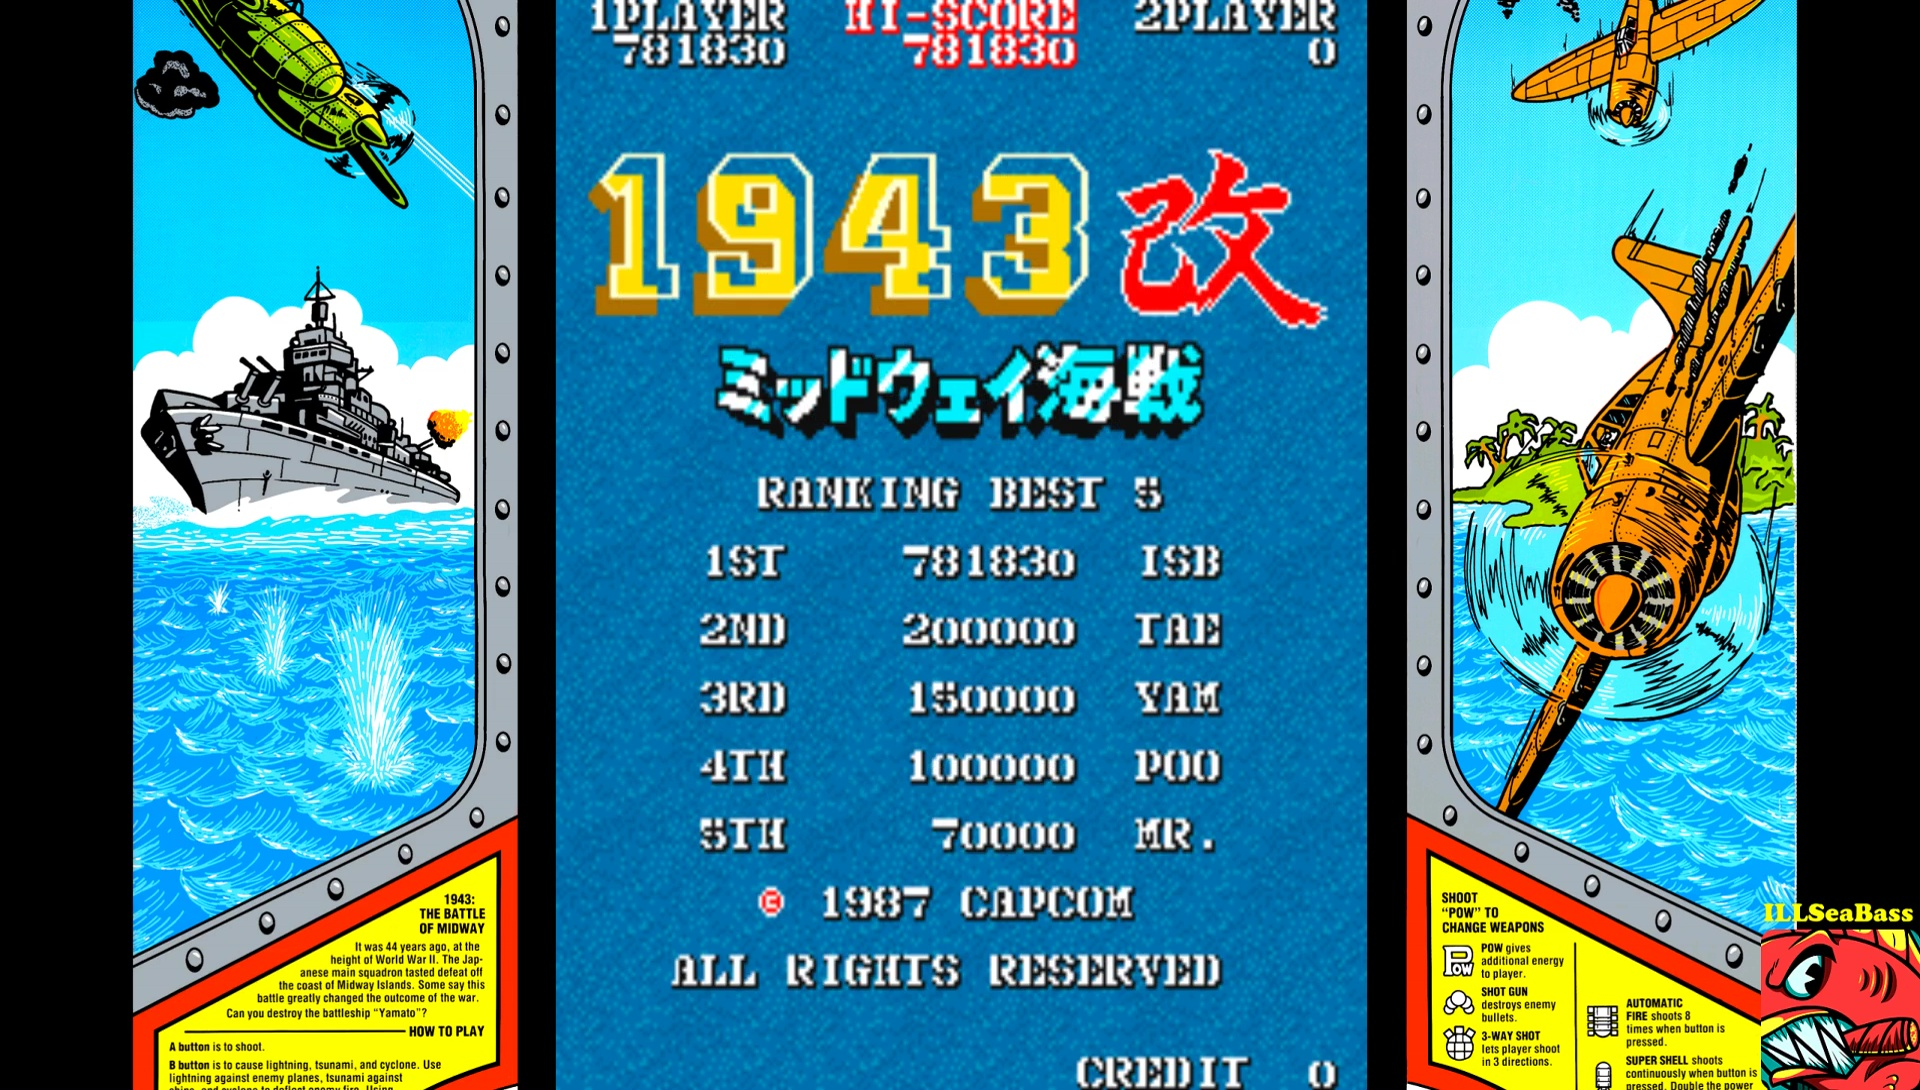 ILLSeaBass: 1943 Kai: Midway Kaisen [Japan] [1943kai] (Arcade Emulated / M.A.M.E.) 781,830 points on 2017-04-12 00:26:08